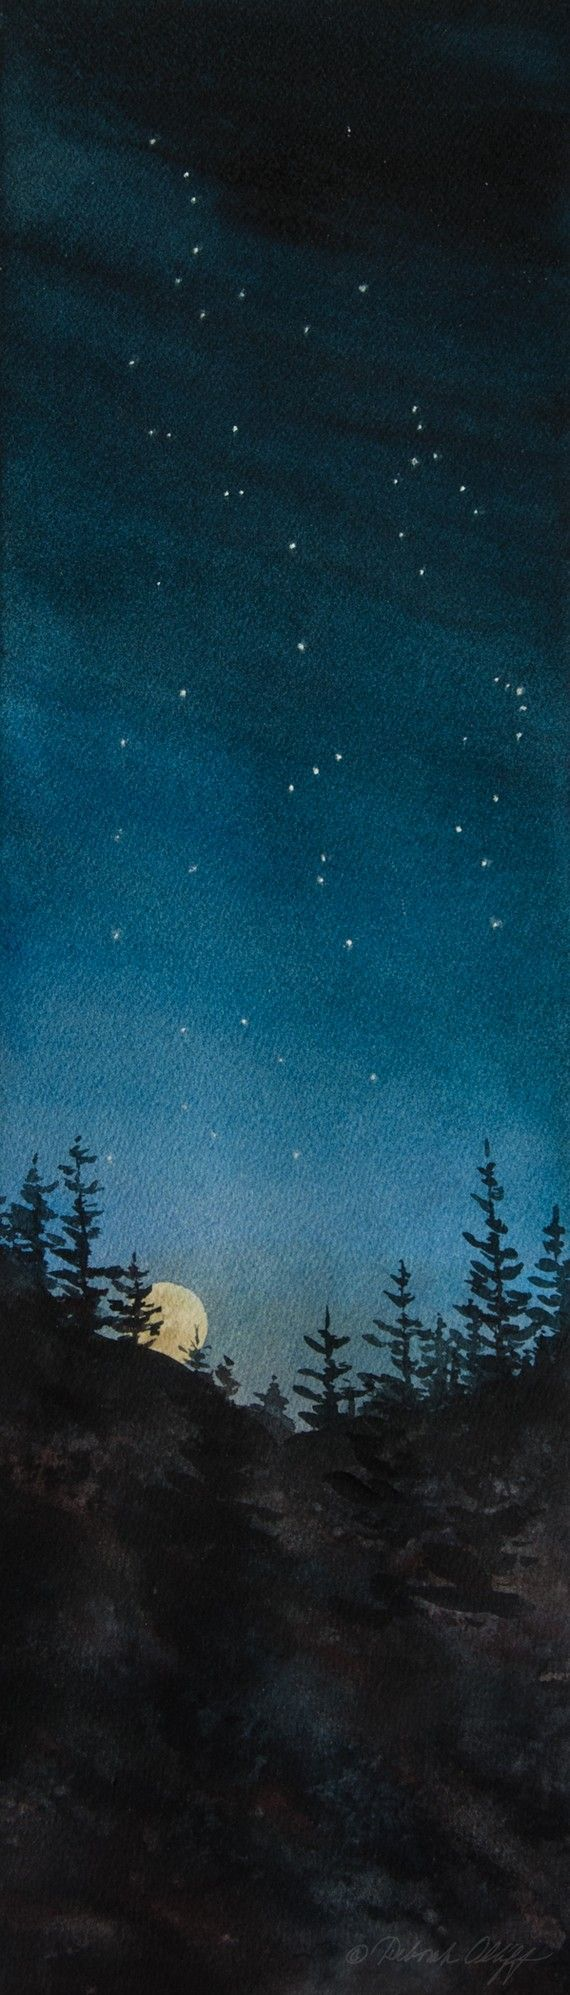 Constellations // Night Sky // Orion // Moon by OlliffStudio. Love the shift in colors of the sky!